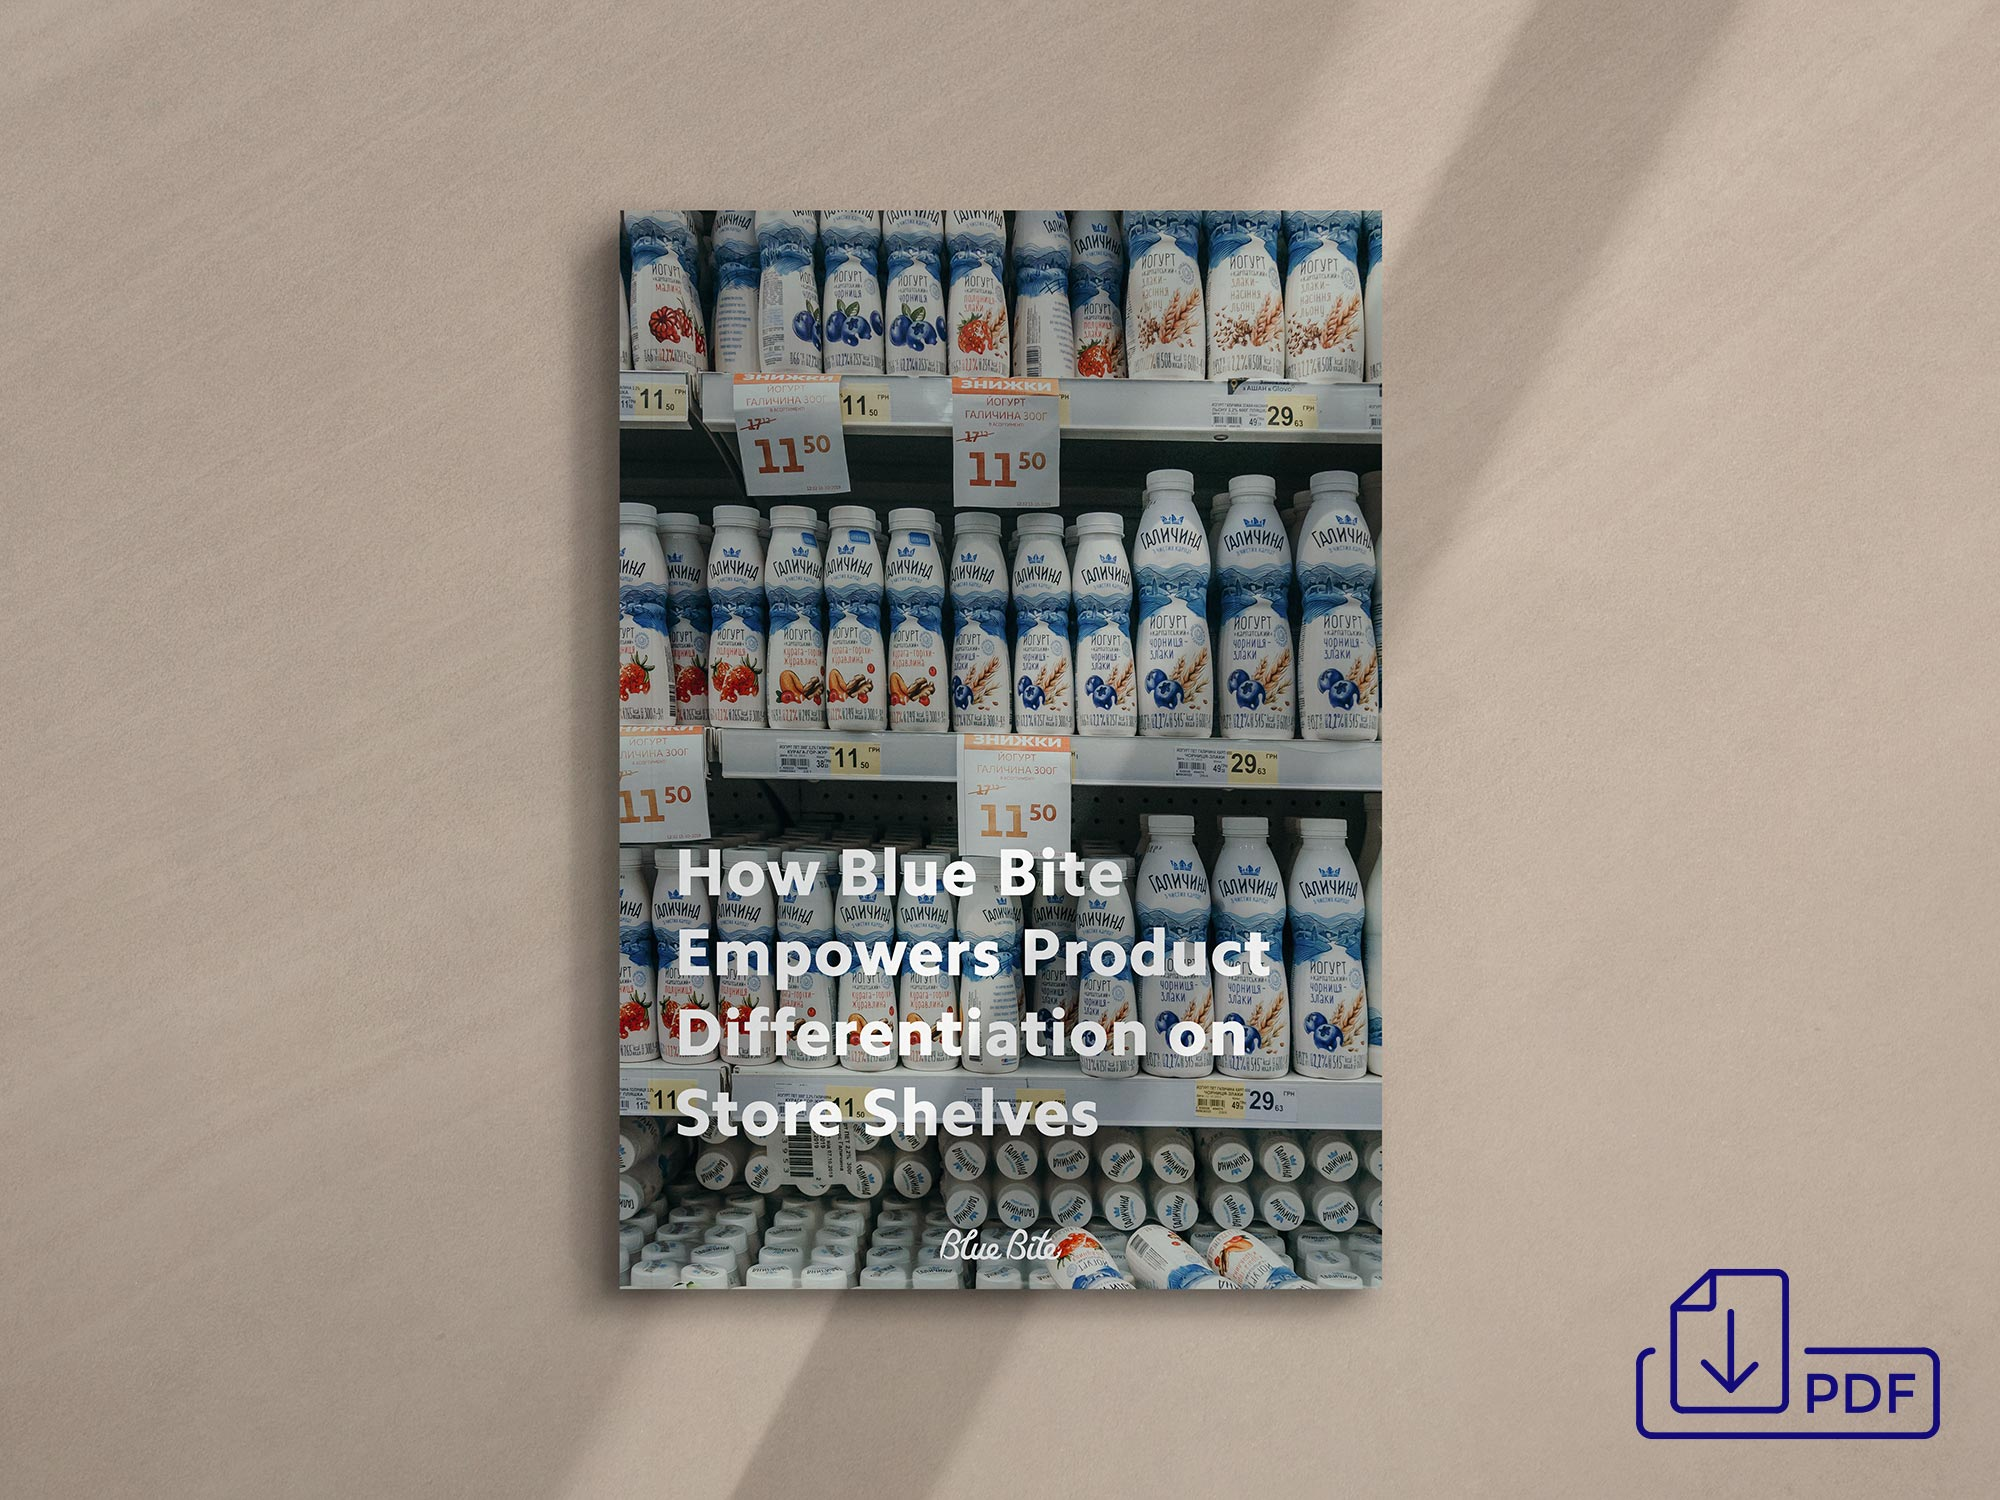 How Blue Bite Empowers Product Differentiation on Store Shelves PDF